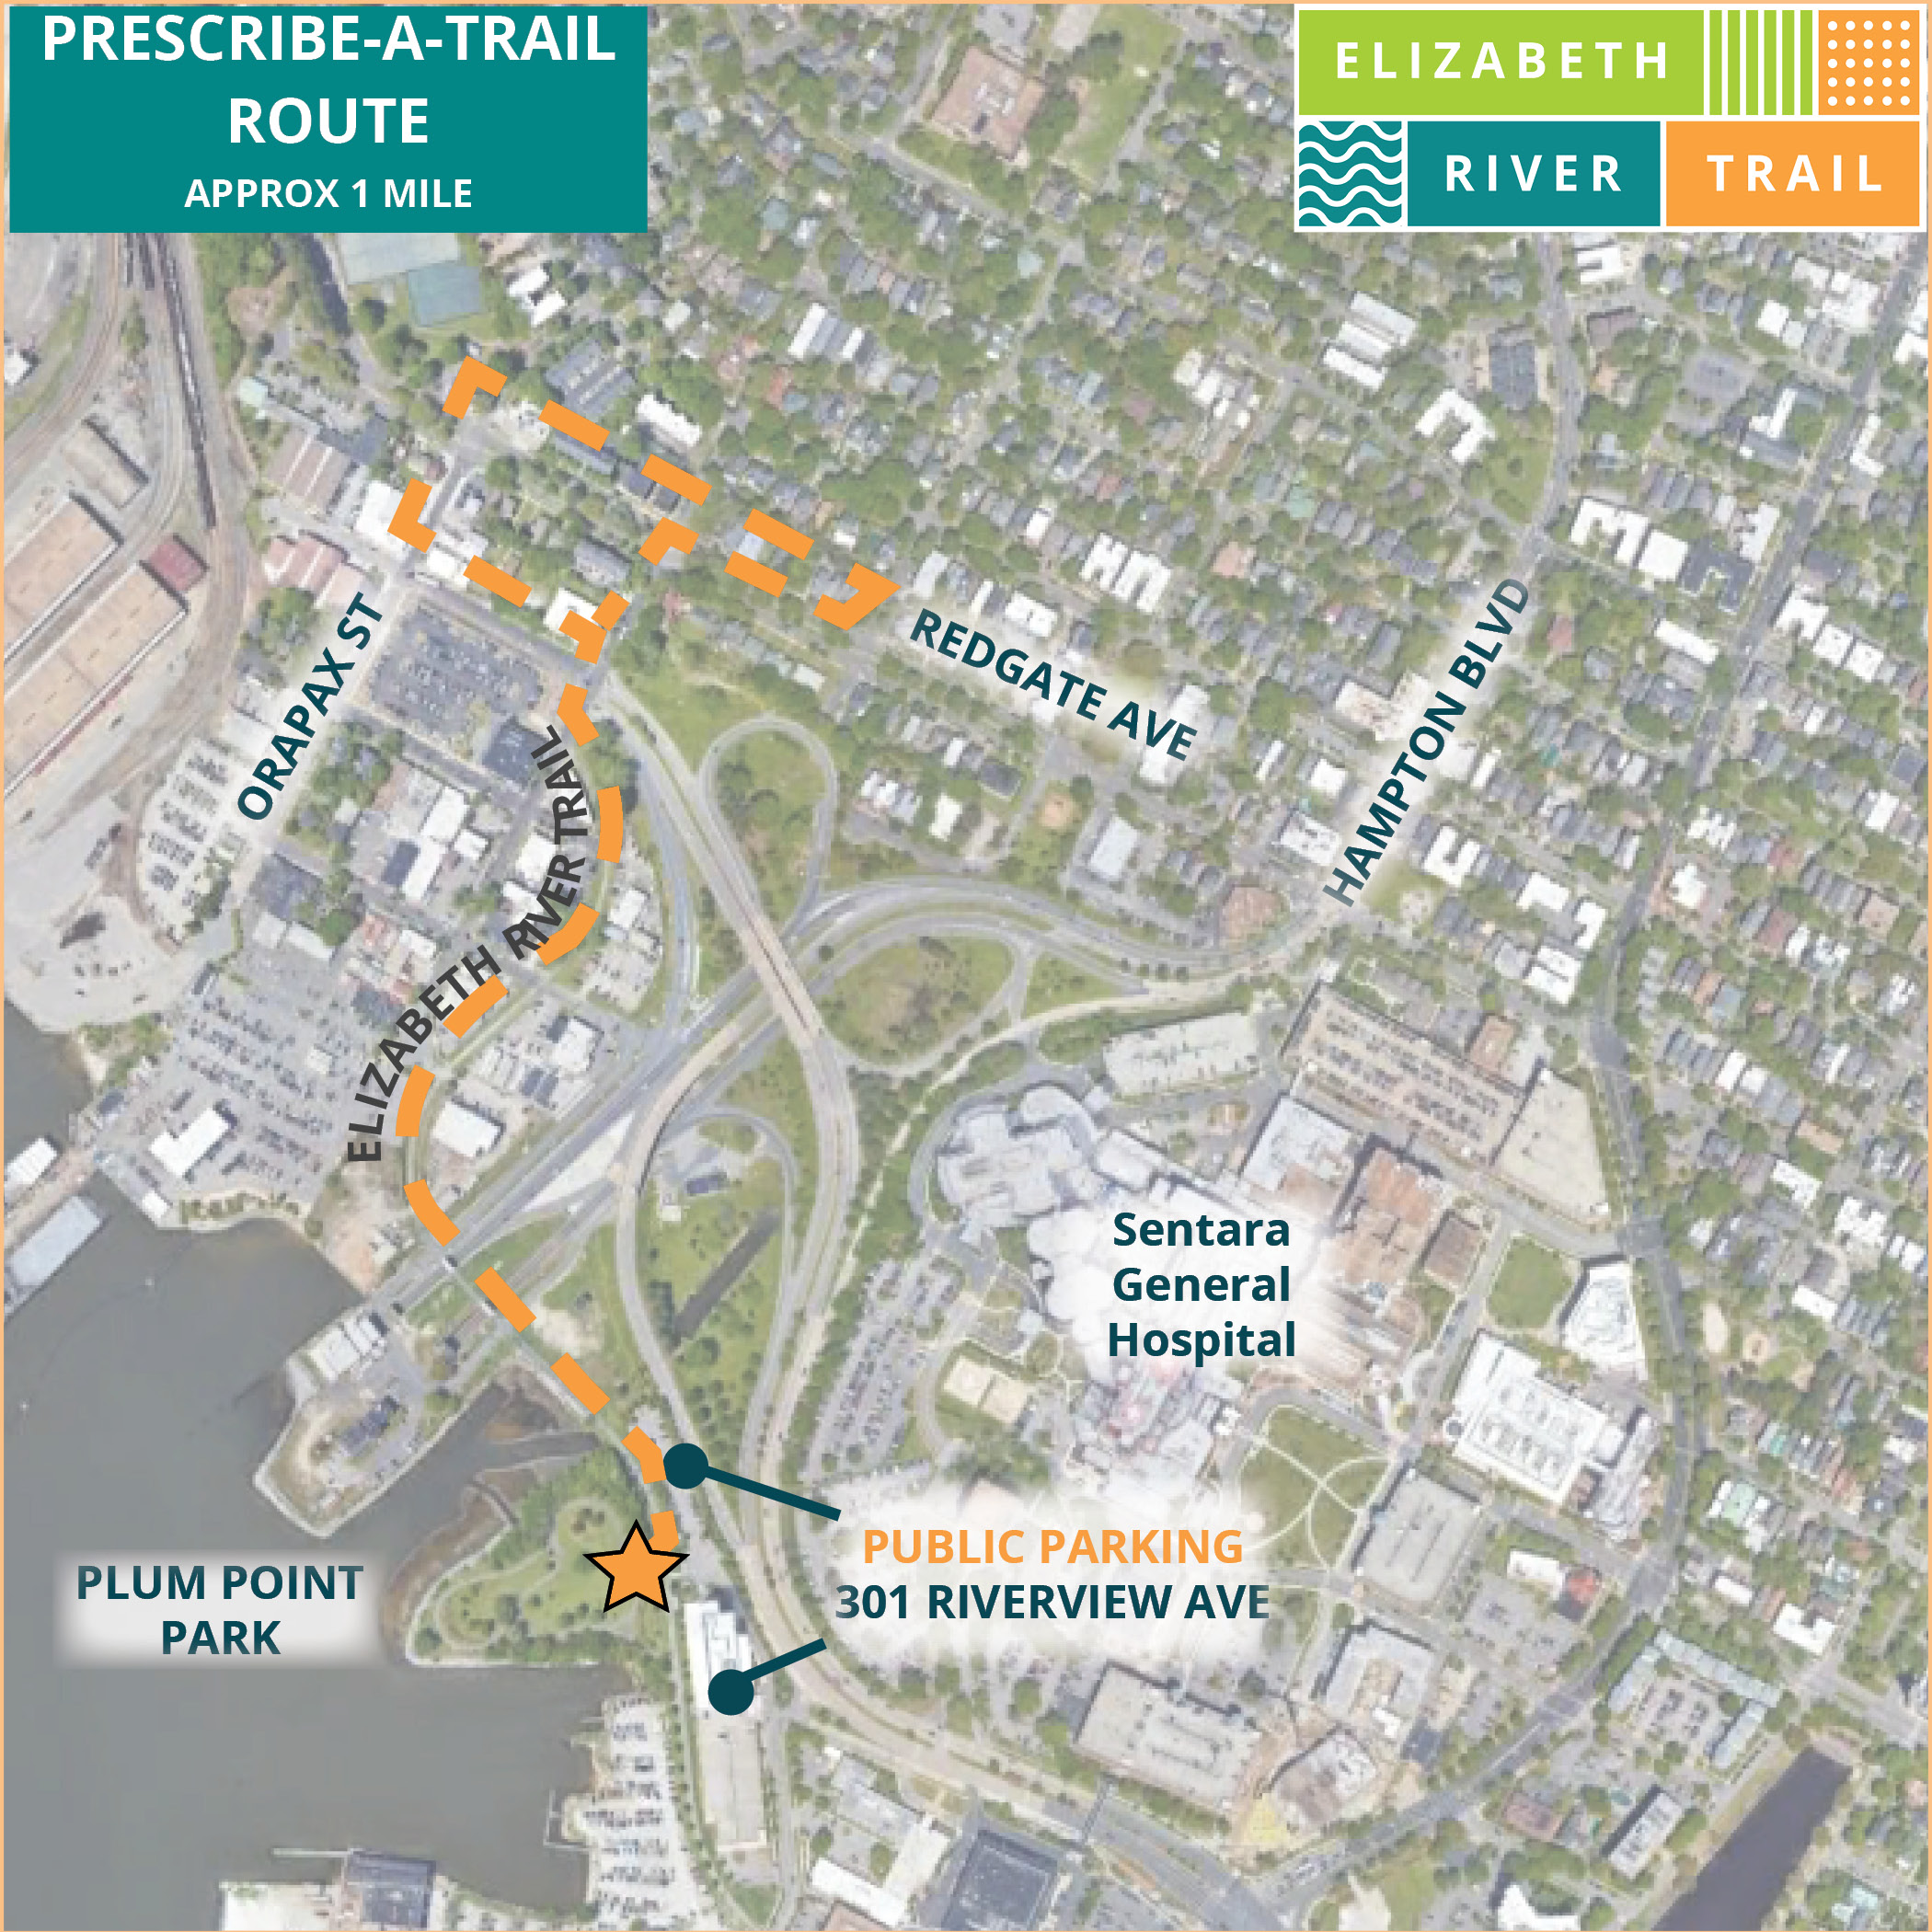 Prescribe-a-Trail Introduced Along the Elizabeth River Trail